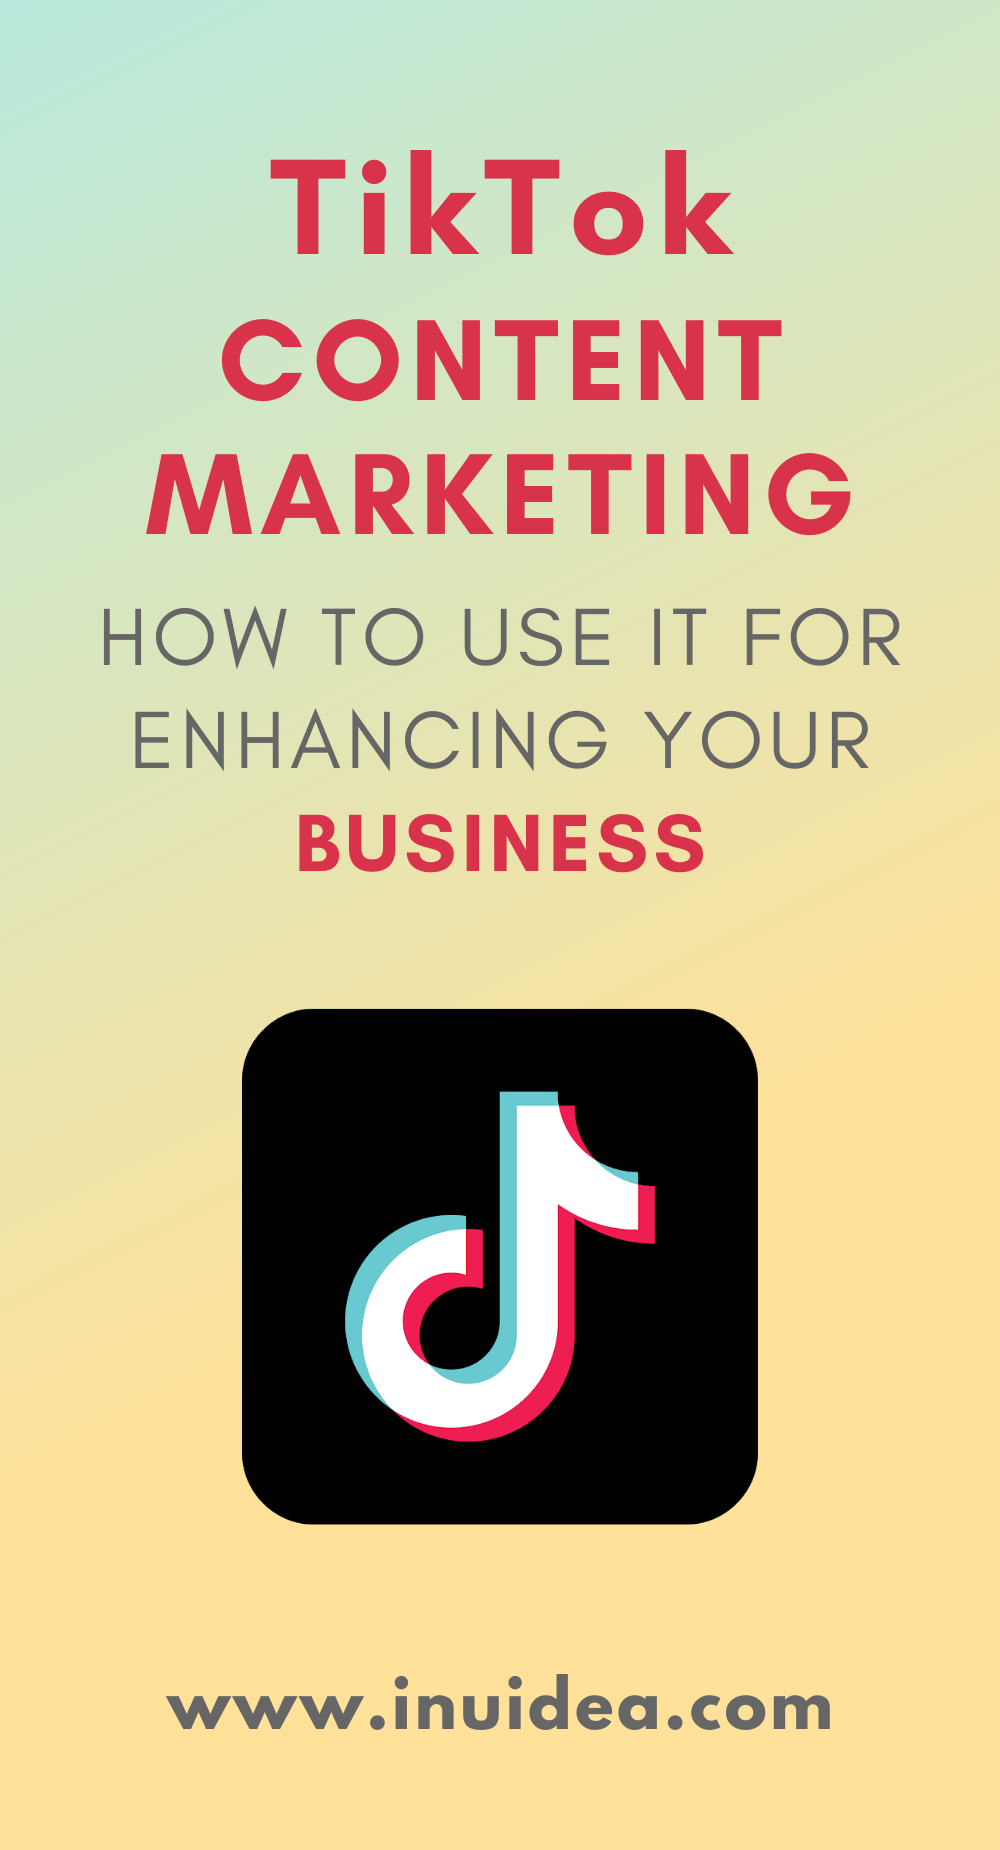 TikTok Content Marketing: How To Use It For Enhancing Your business